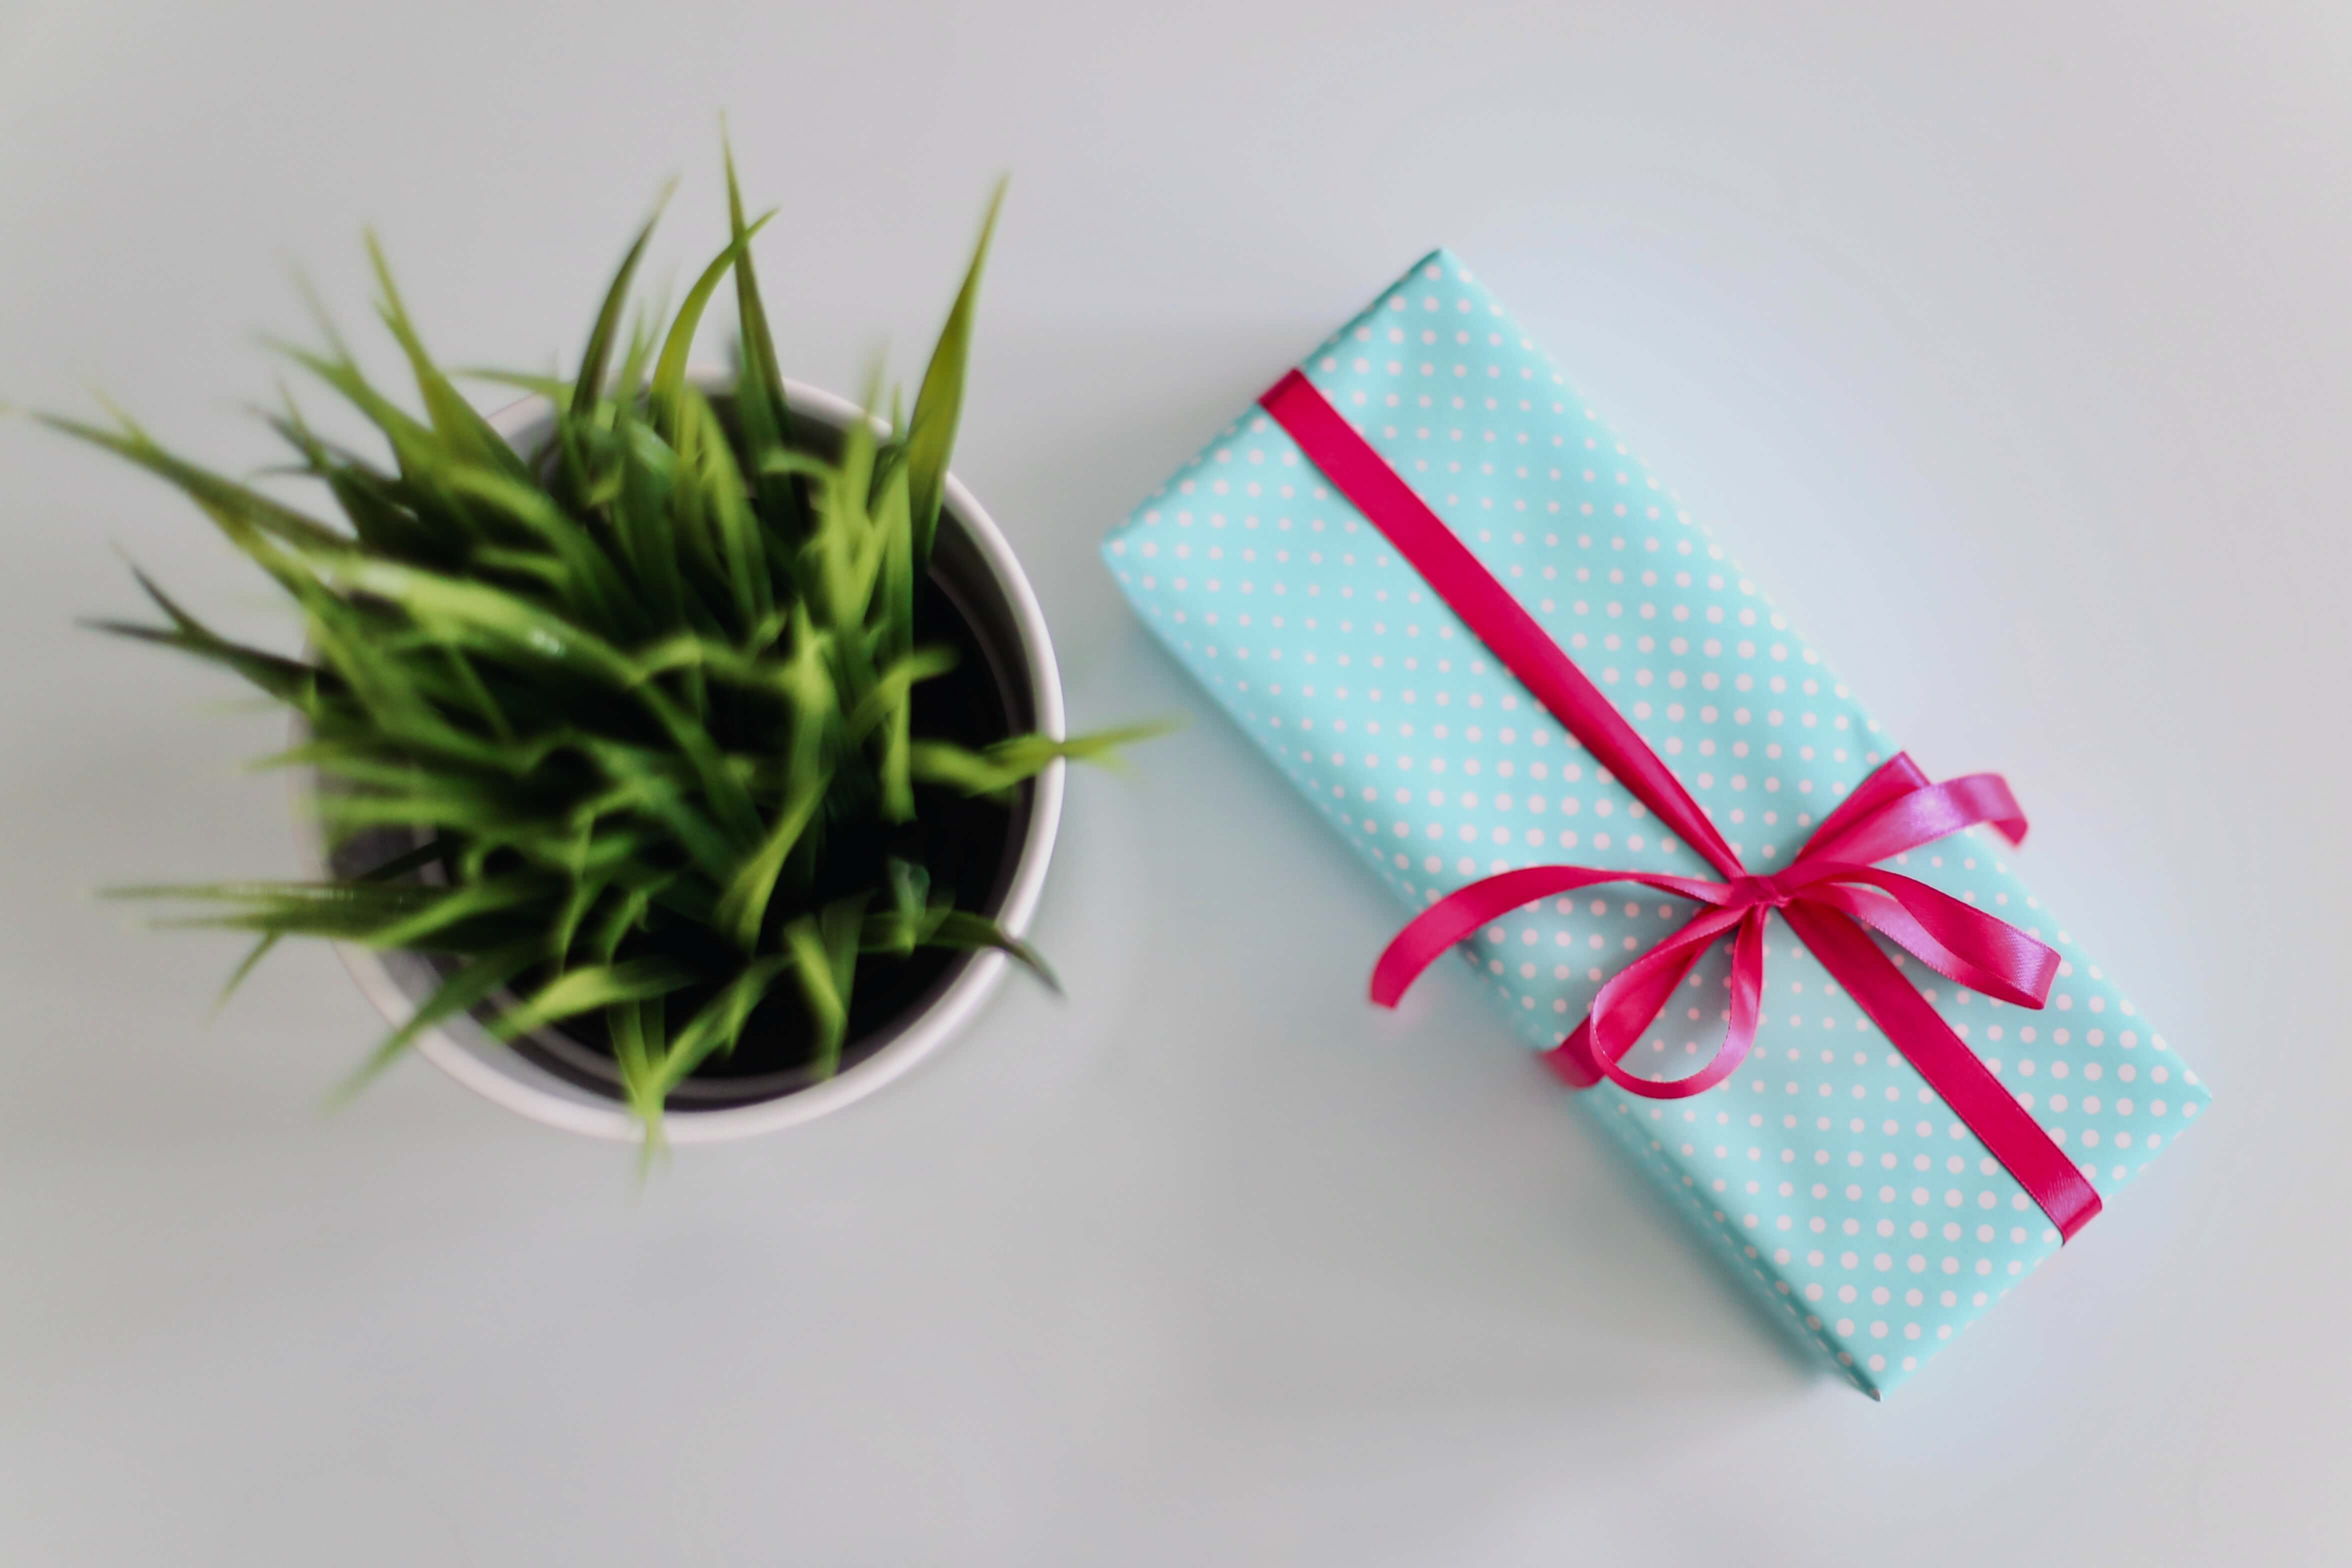 giving gifts to friends